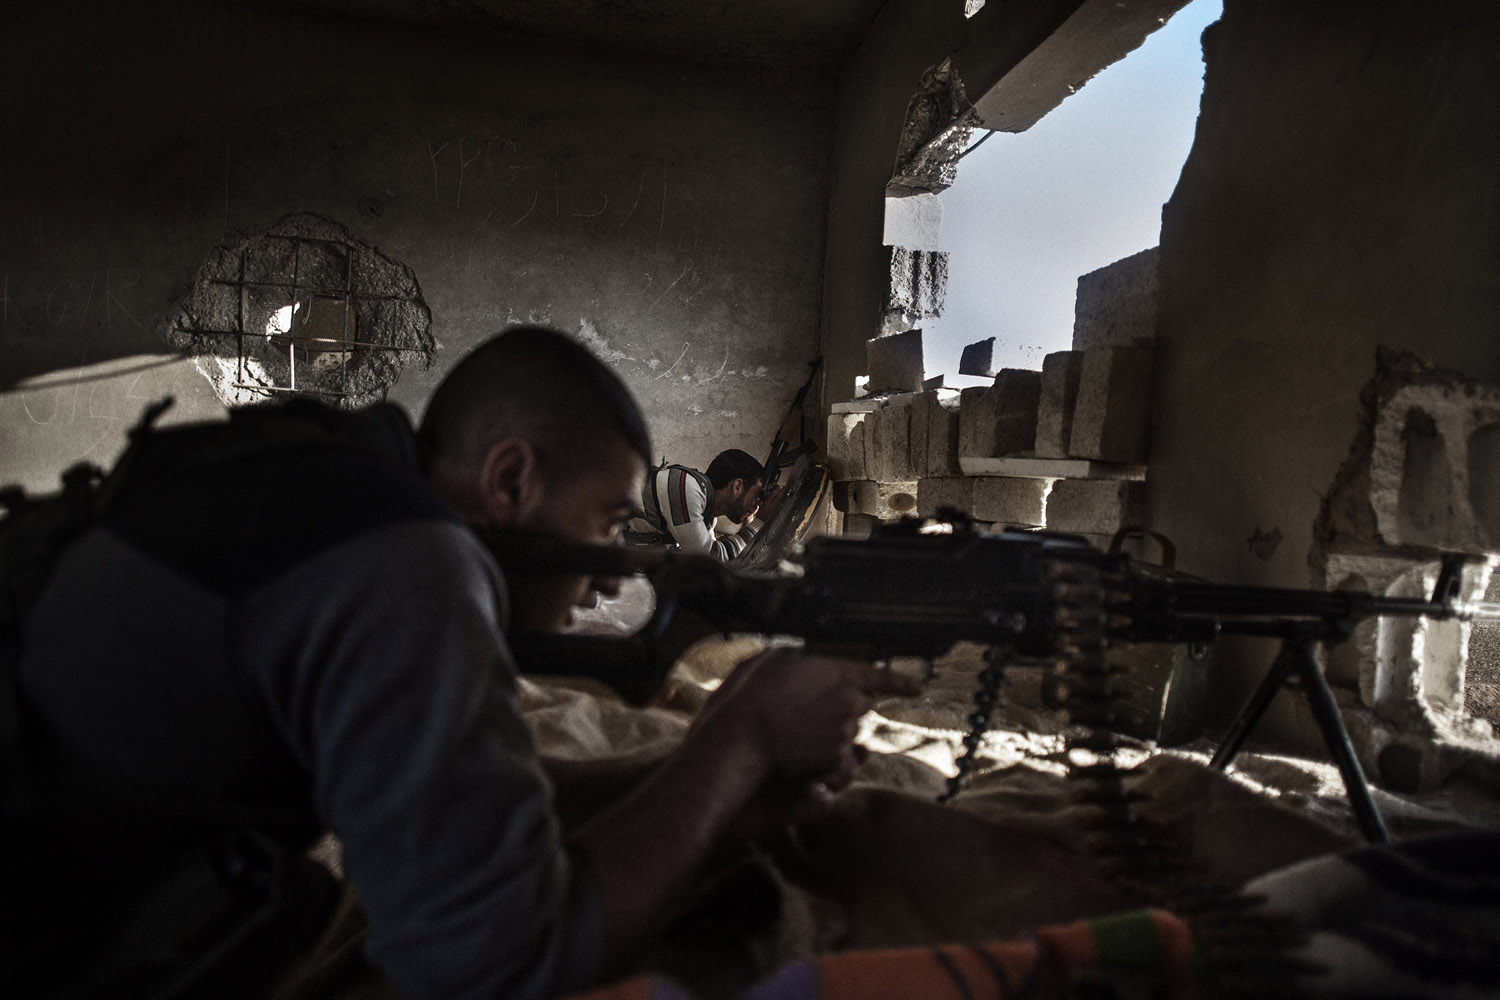 Armed YPG fighters hold position inside a trench in the Syrian town of Ras al-Ain, close to the Turkish border.